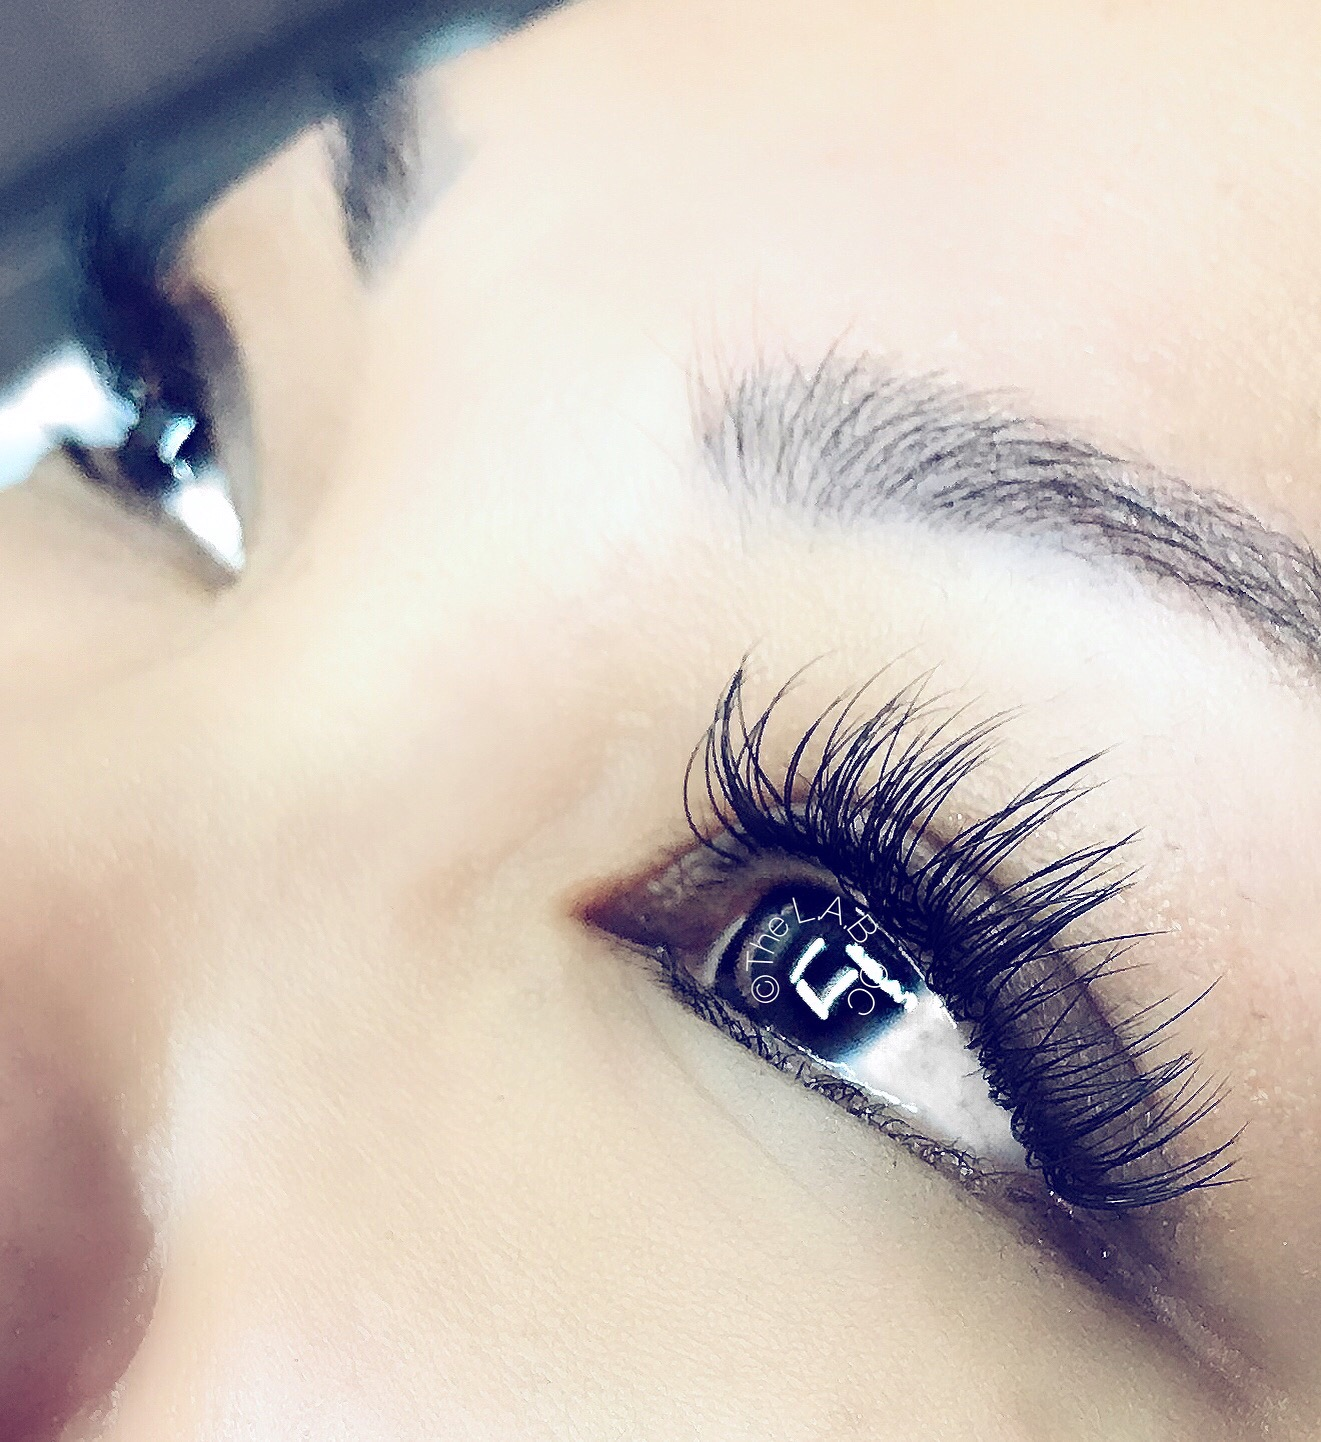 Classics are a set of individual lash extensions